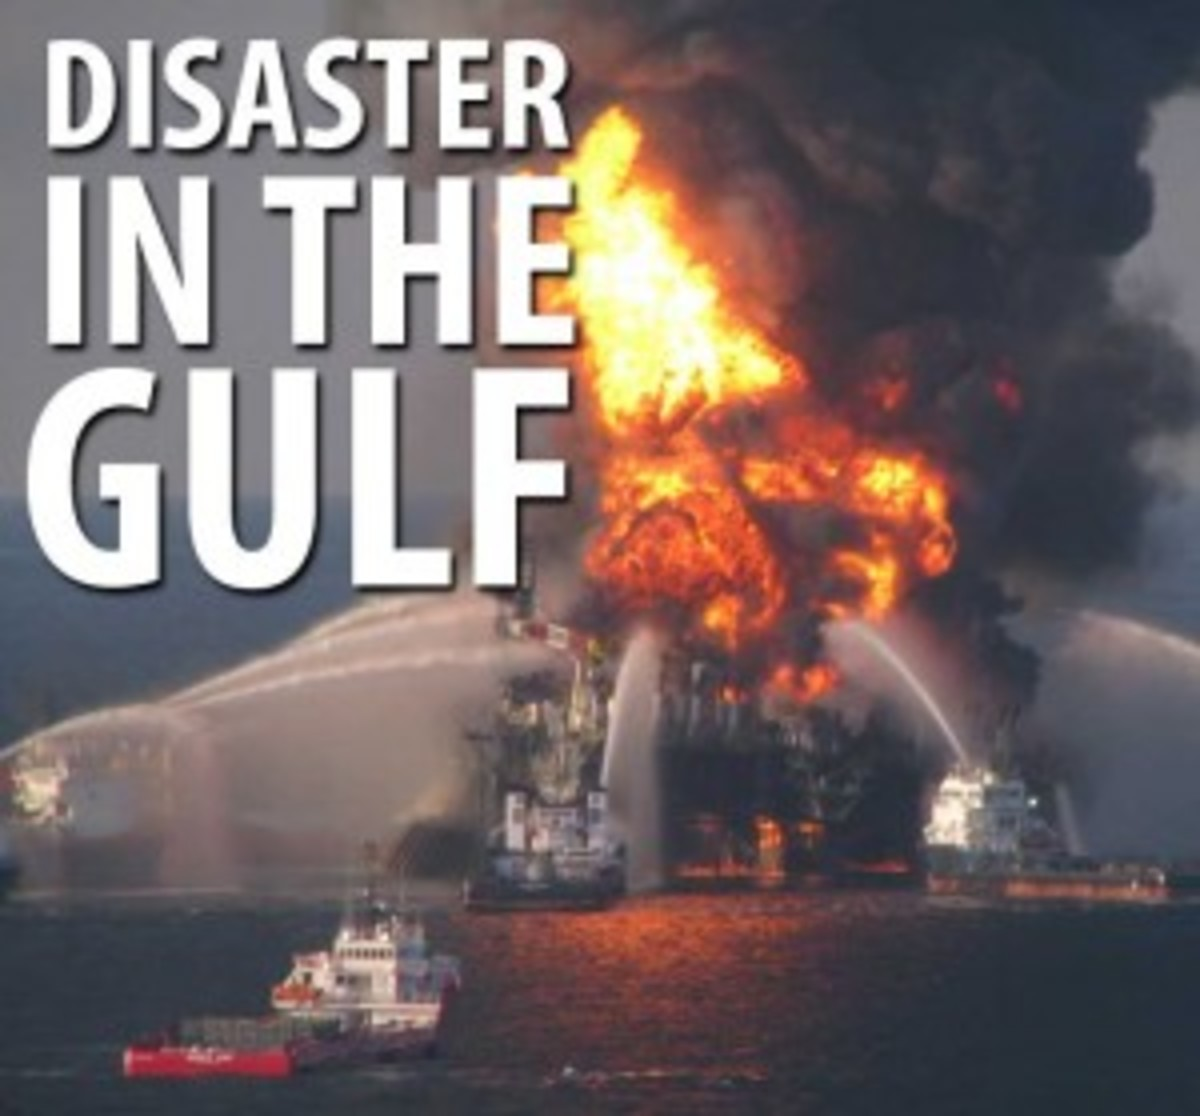 Click here for more stories on the Gulf oil spill